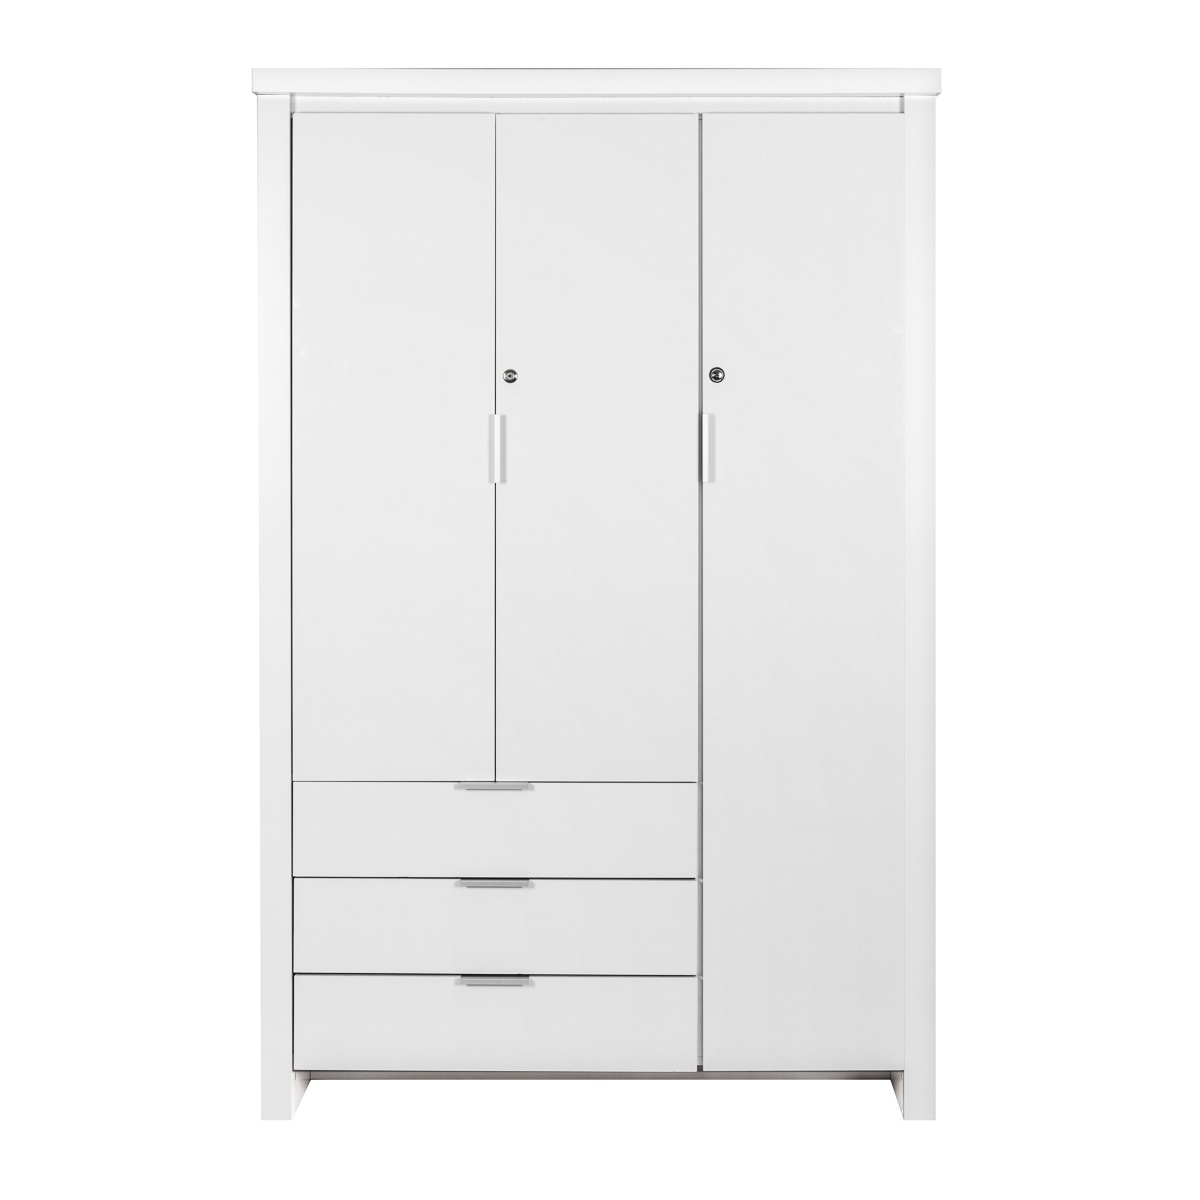 Safari 3 Door Wardrobe White Safari Collection Lifestyle Furniture Regarding 3 Door White Wardrobes (Image 17 of 25)